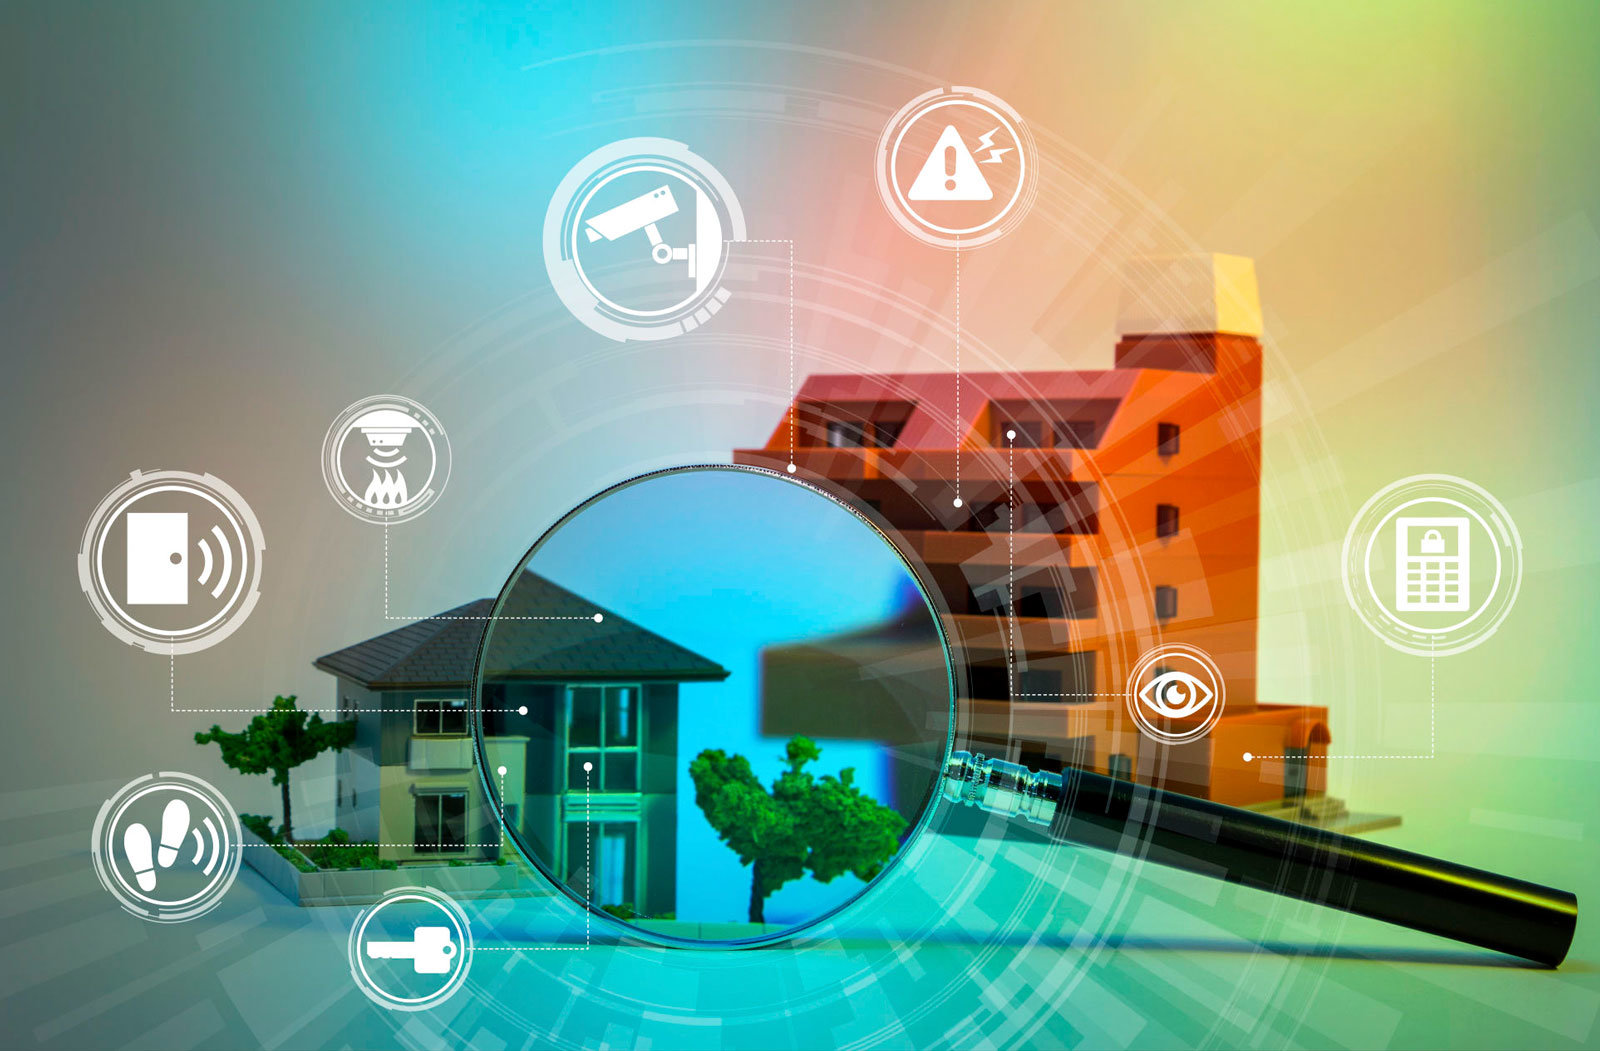 Approaches to Build a Smart Home for Modern Homeowners